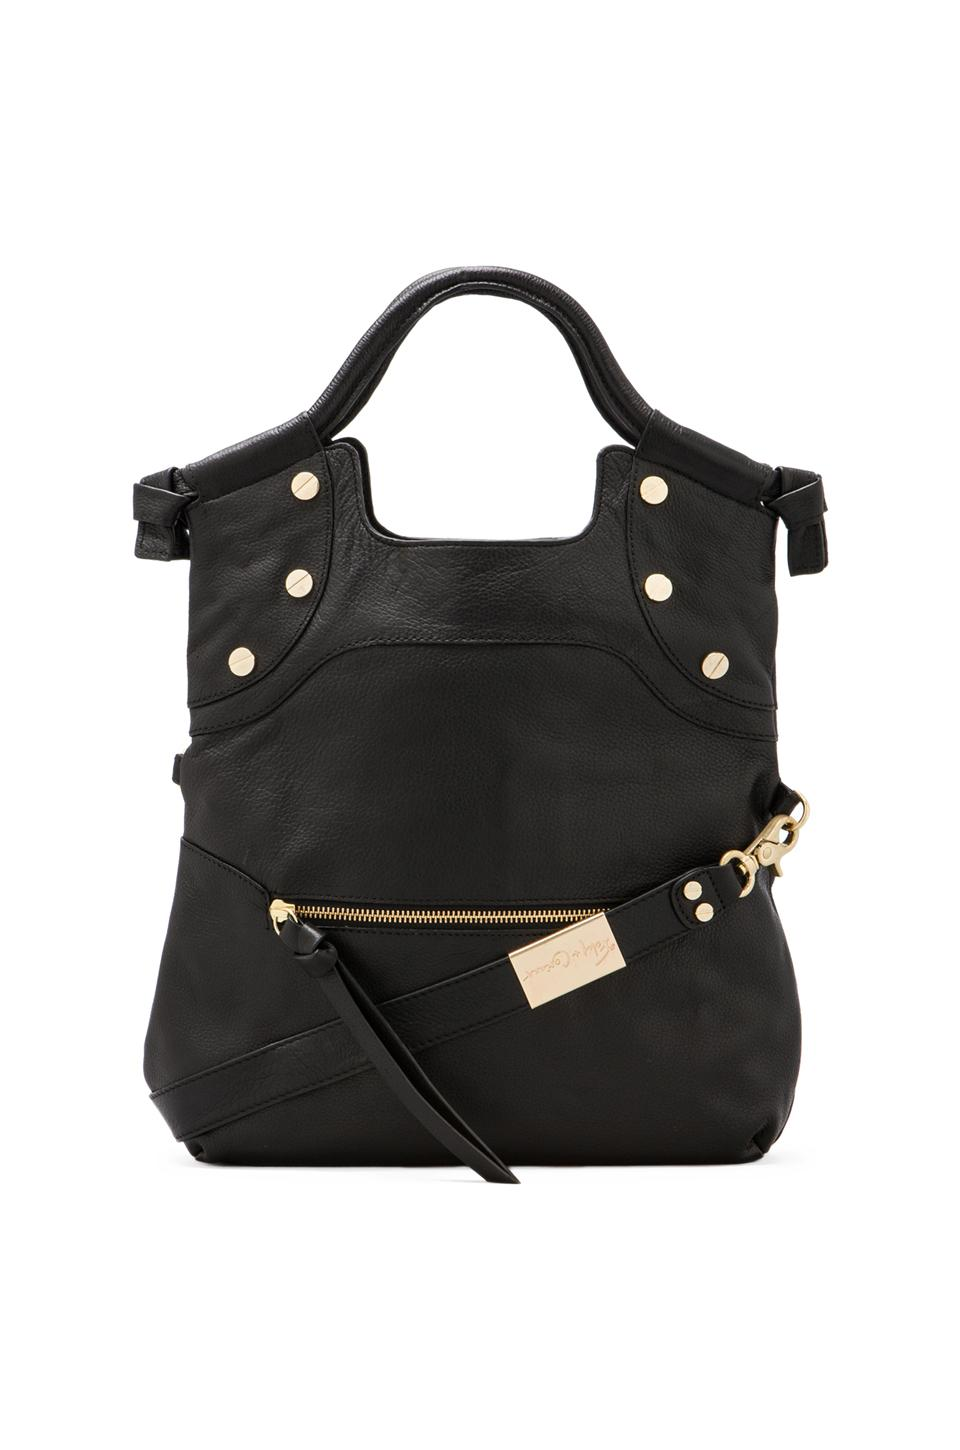 Foley + Corinna FC Lady Bag in Black